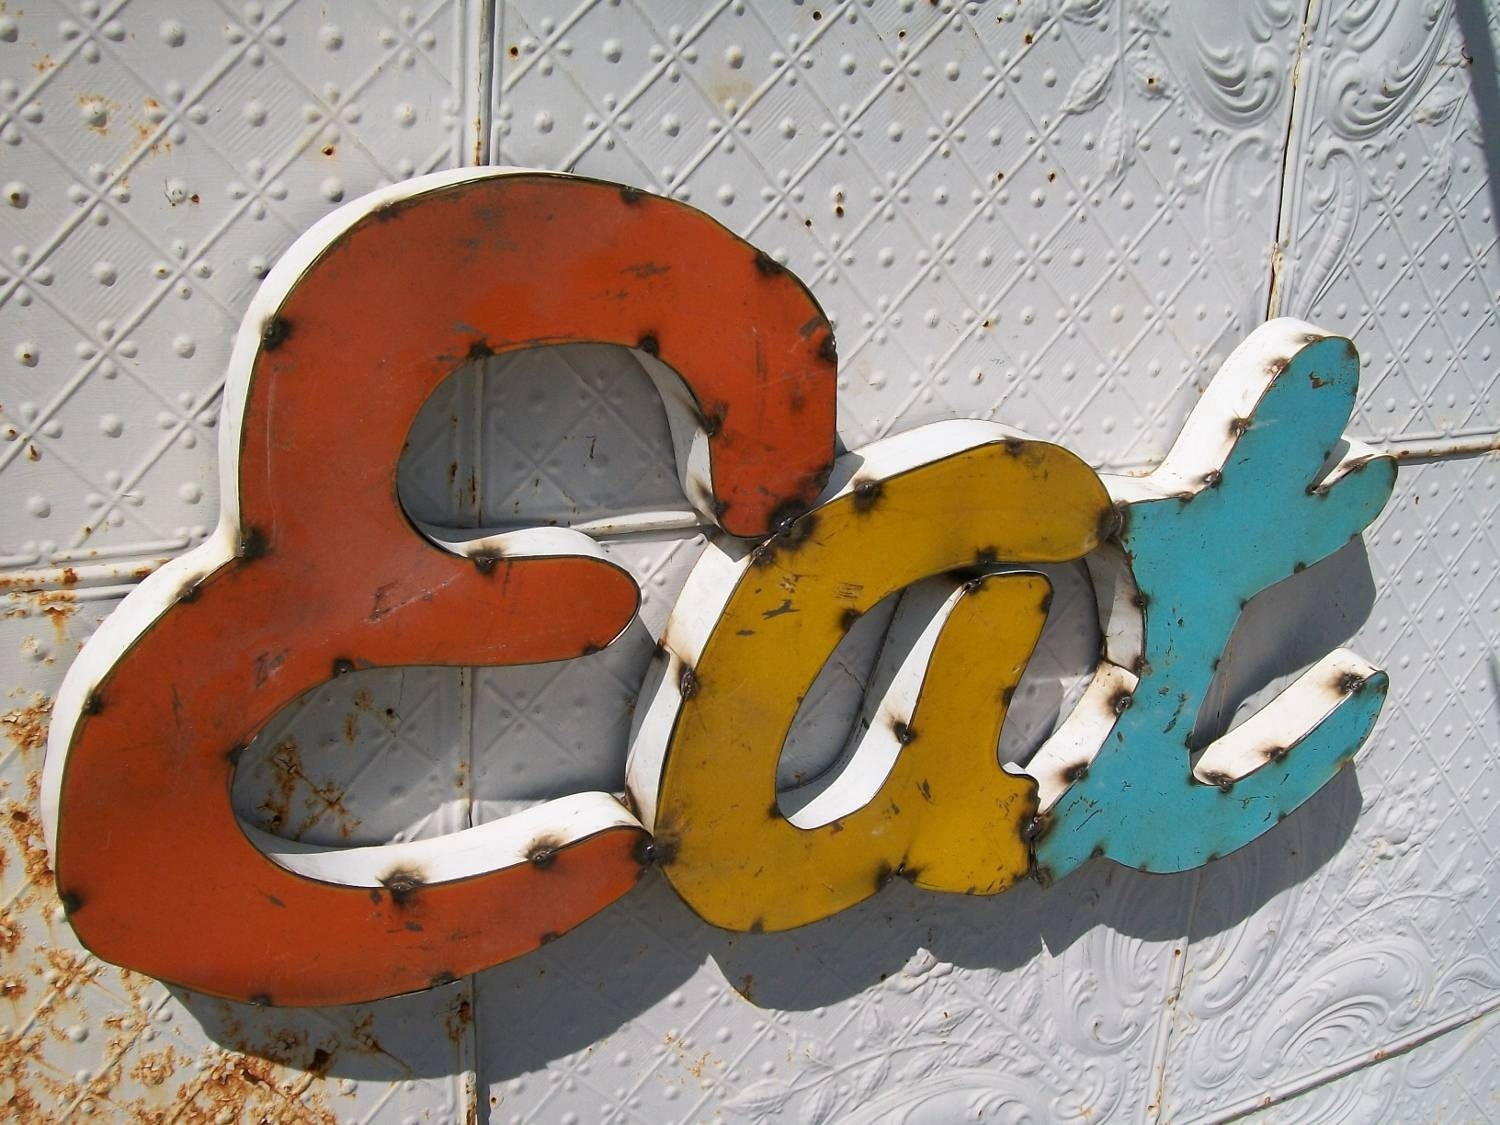 Wall Decor: Large Metal Letters For Wall Decor For Home Decorative Inside Most Recent Metal Wall Art Letters (View 7 of 20)